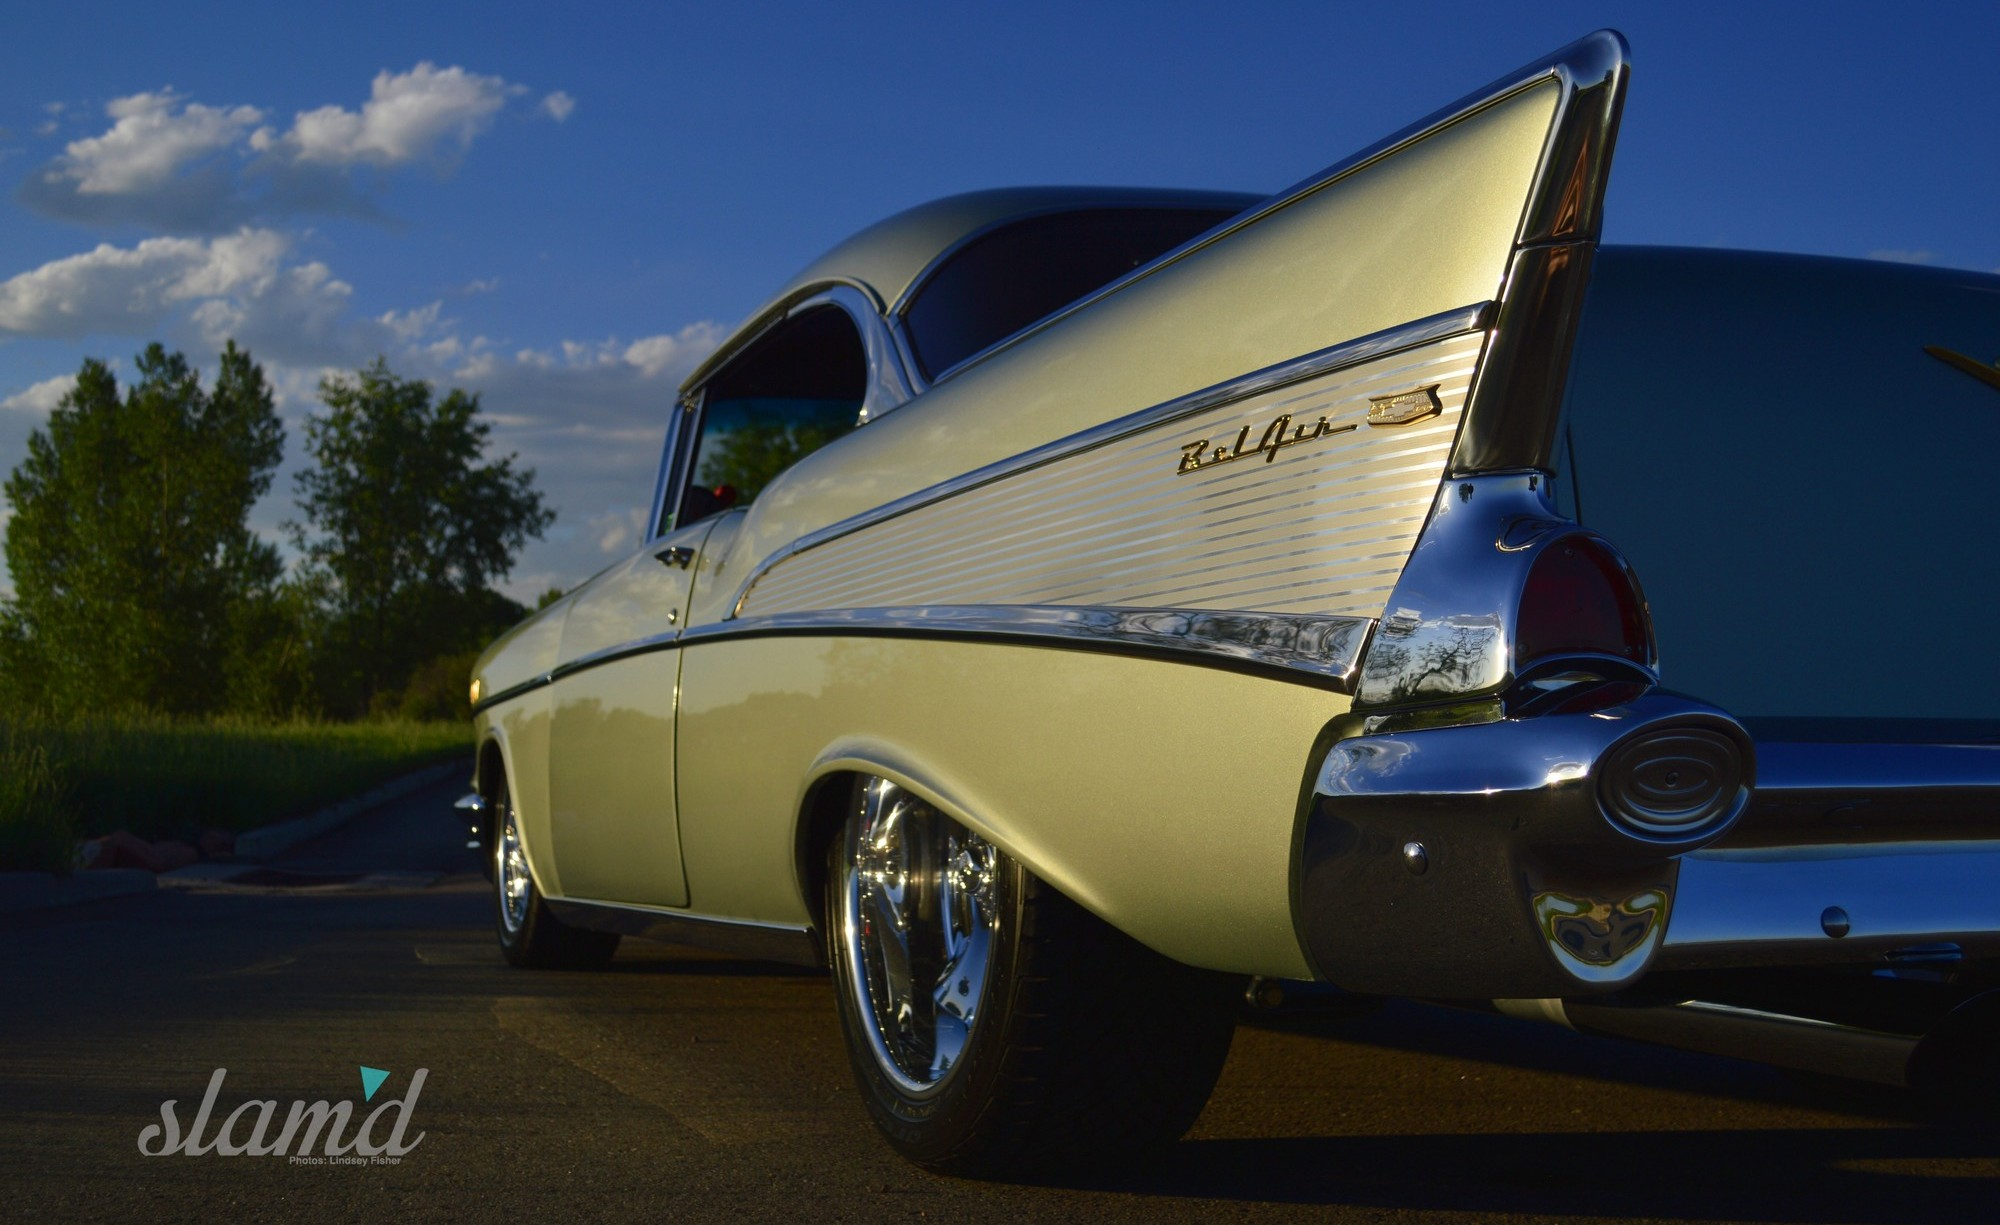 First Car Dreams Marvin Meyers 1957 Bel Air 2 Door Hardtop Slam Chevy 4 Thats Because His This Now Custom Meant Being Further Launched Into An Automotive Passion That Started Early On And